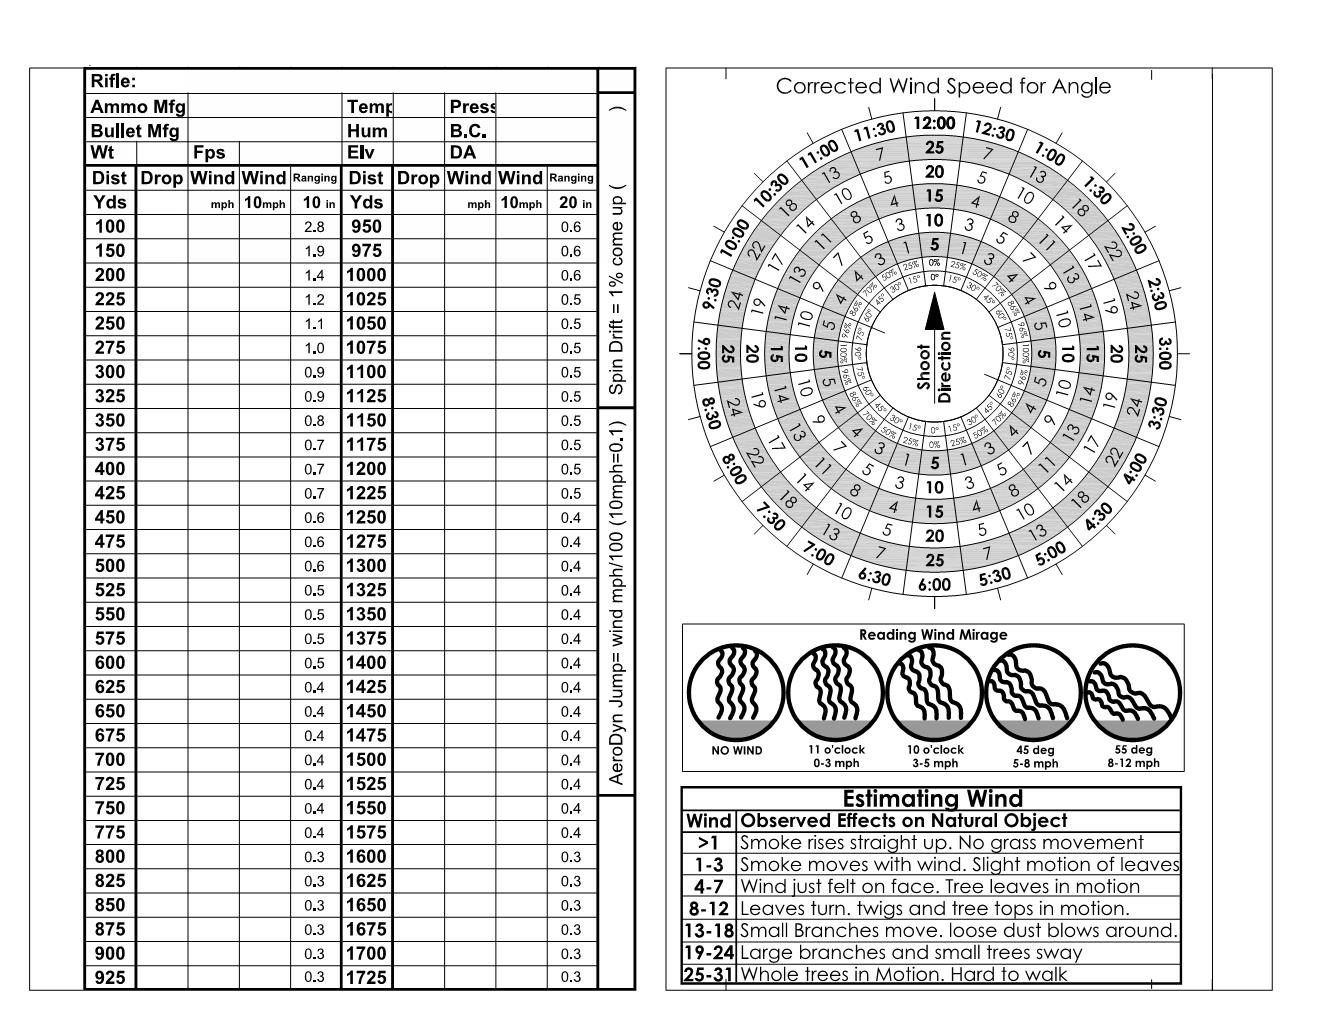 Printable Charts found on Sniper's Hide, this one created by Ted H in the SH Forum